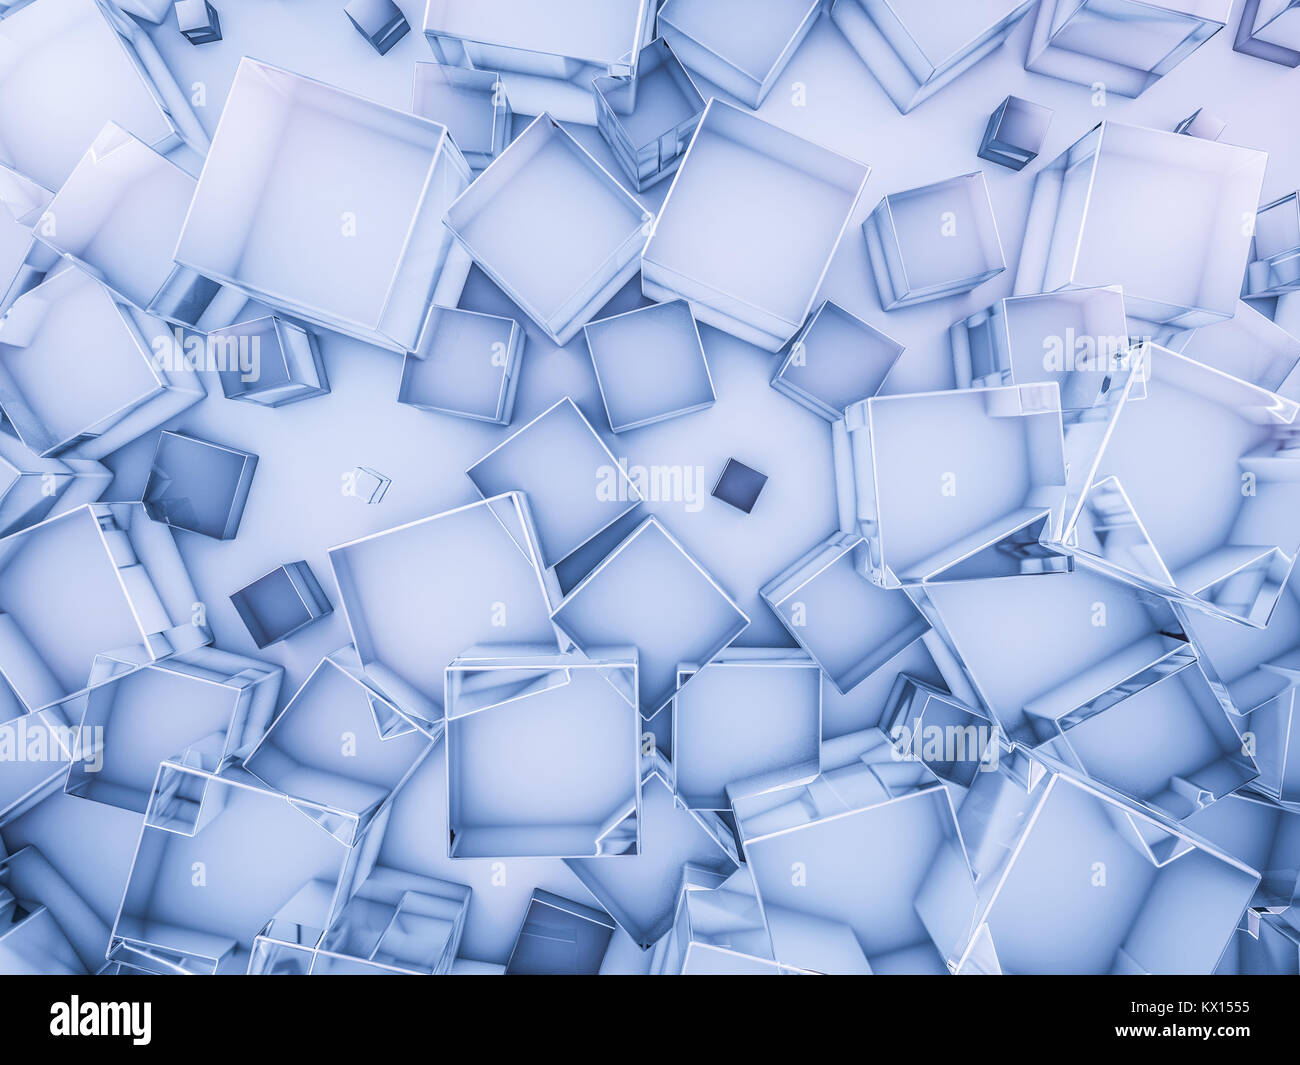 Hexagon abstract glass blue background. 3D rendering - Stock Image